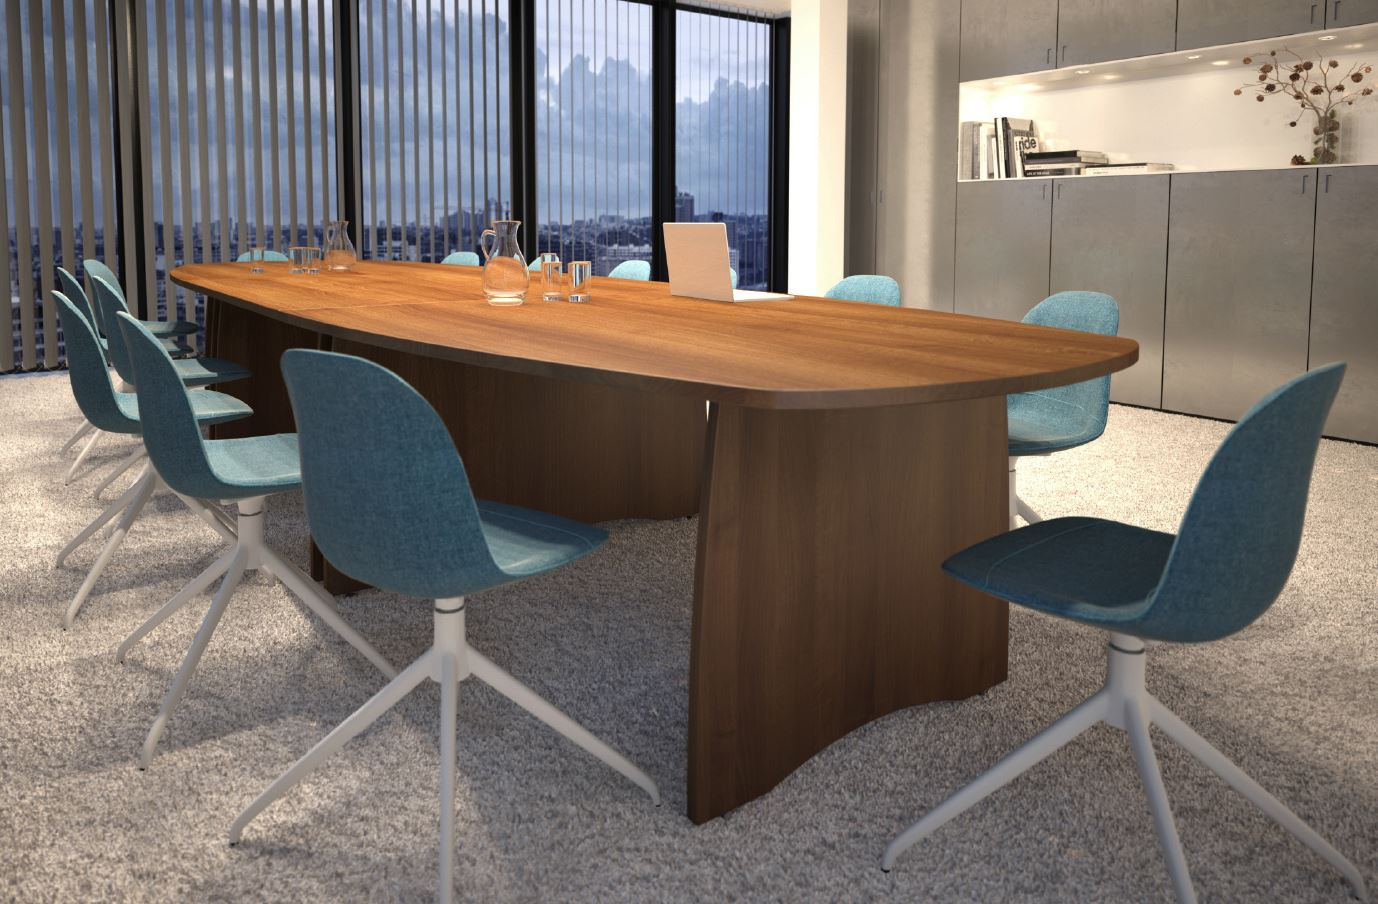 EX10 panel end boardroom table